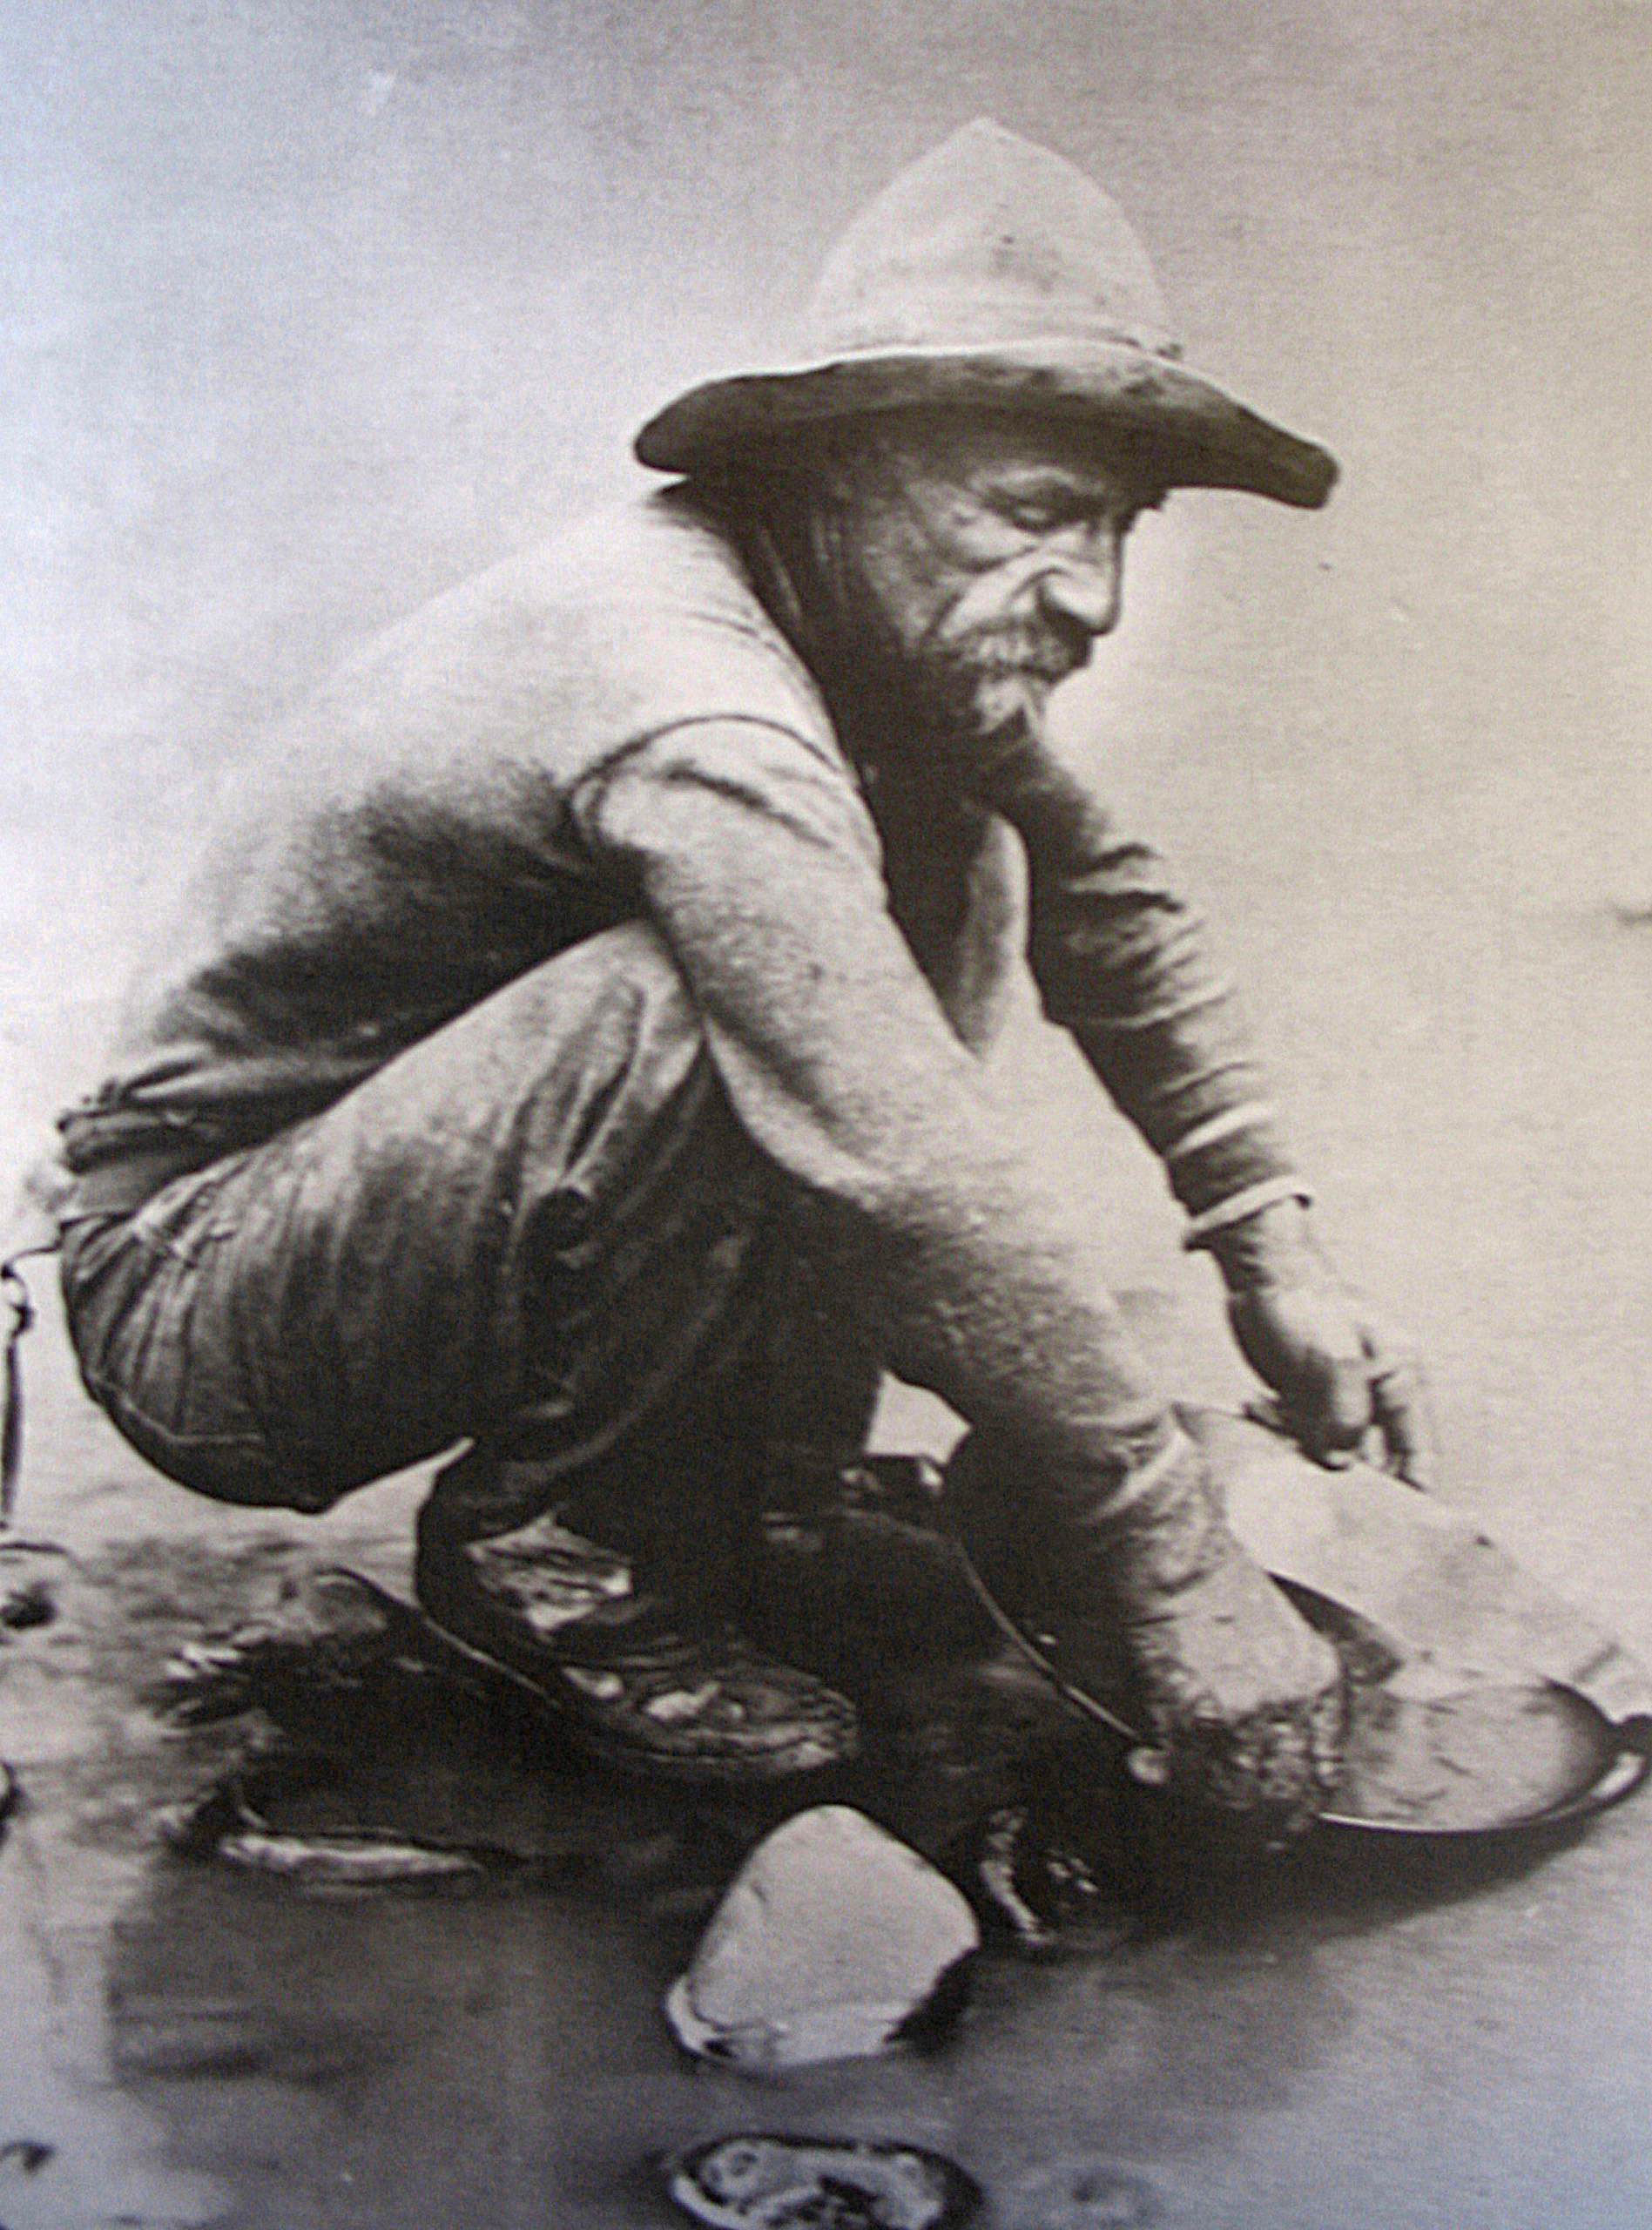 A forty-niner pans for gold on California's American River. Photo taken by L. C. McClure, 1850.